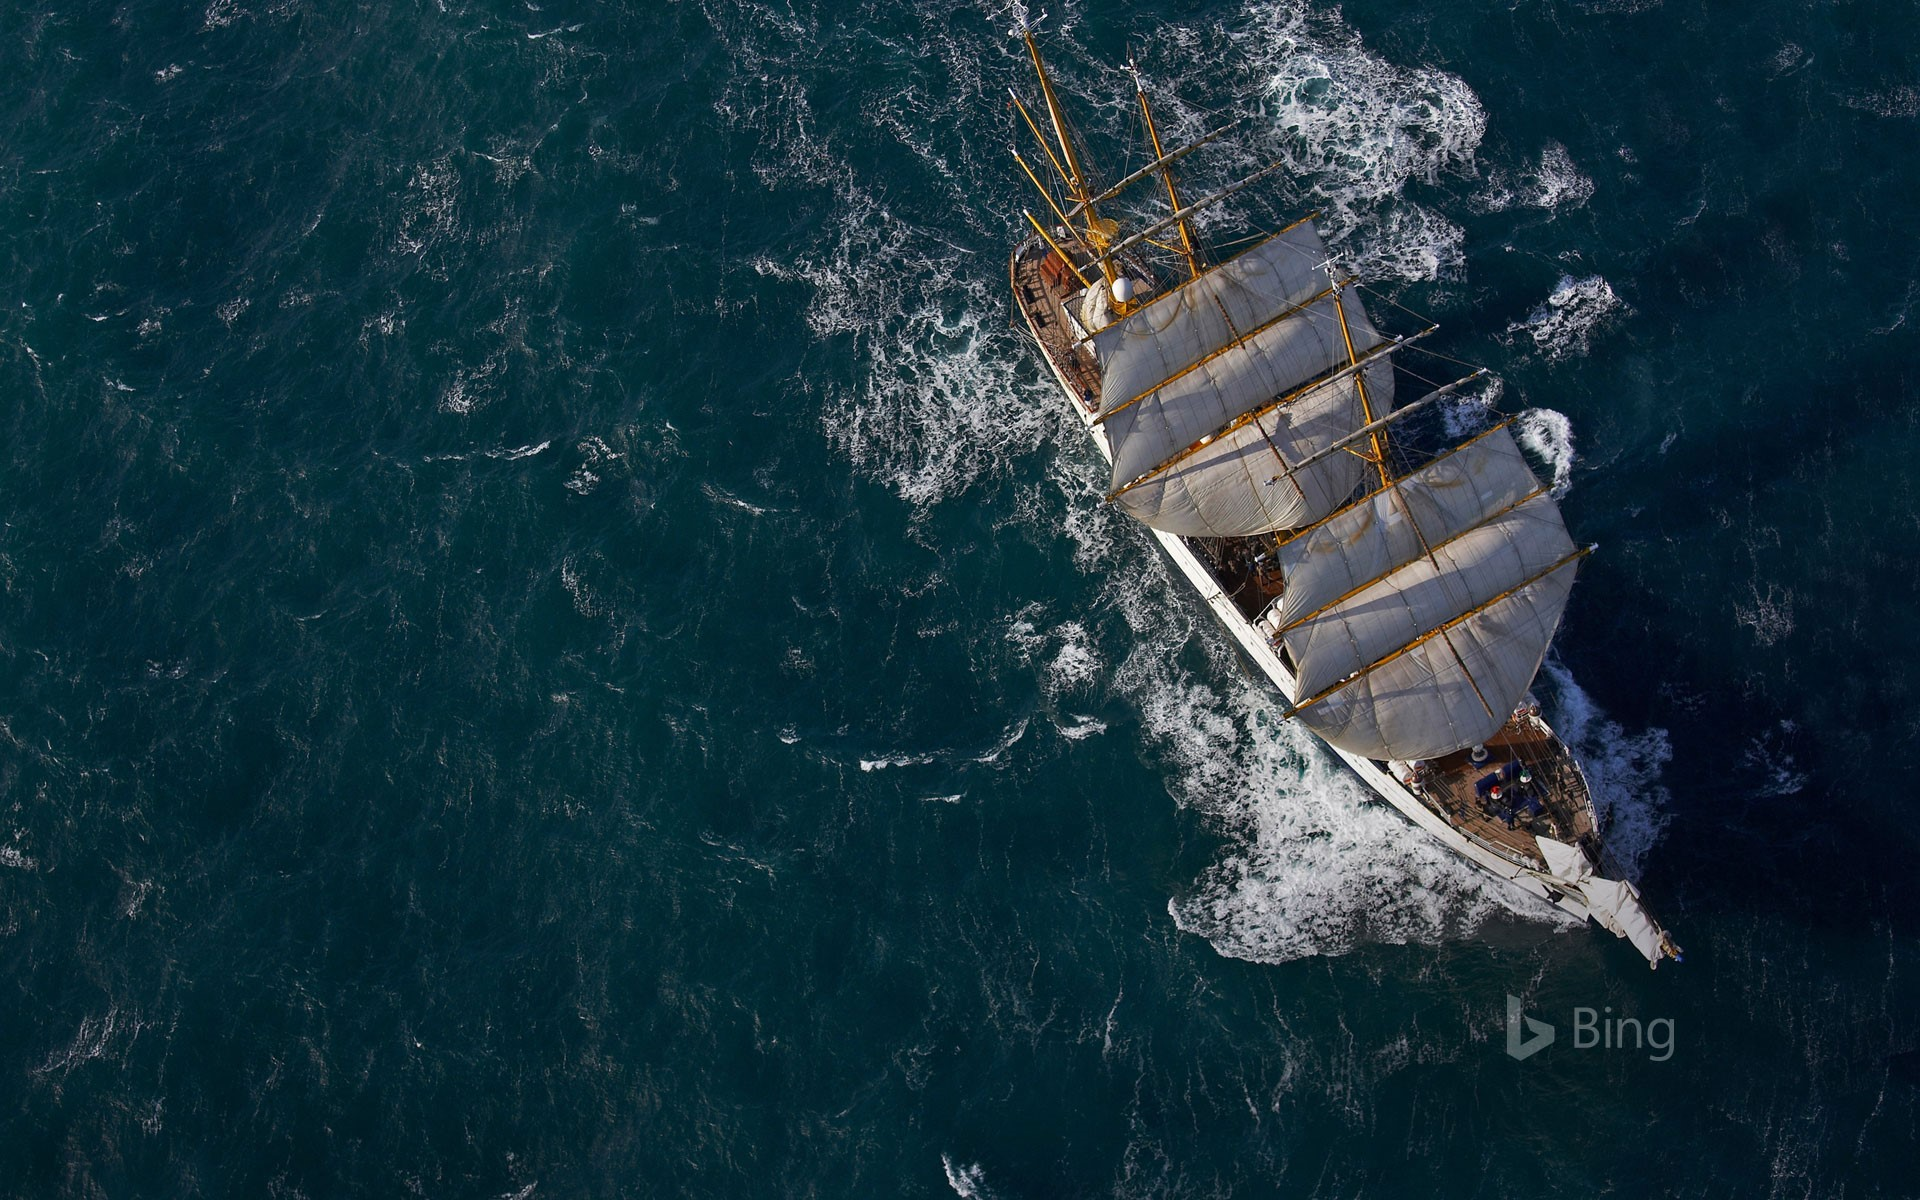 German navy tall ship Gorch Fock in waters close to Reykjavík, Iceland